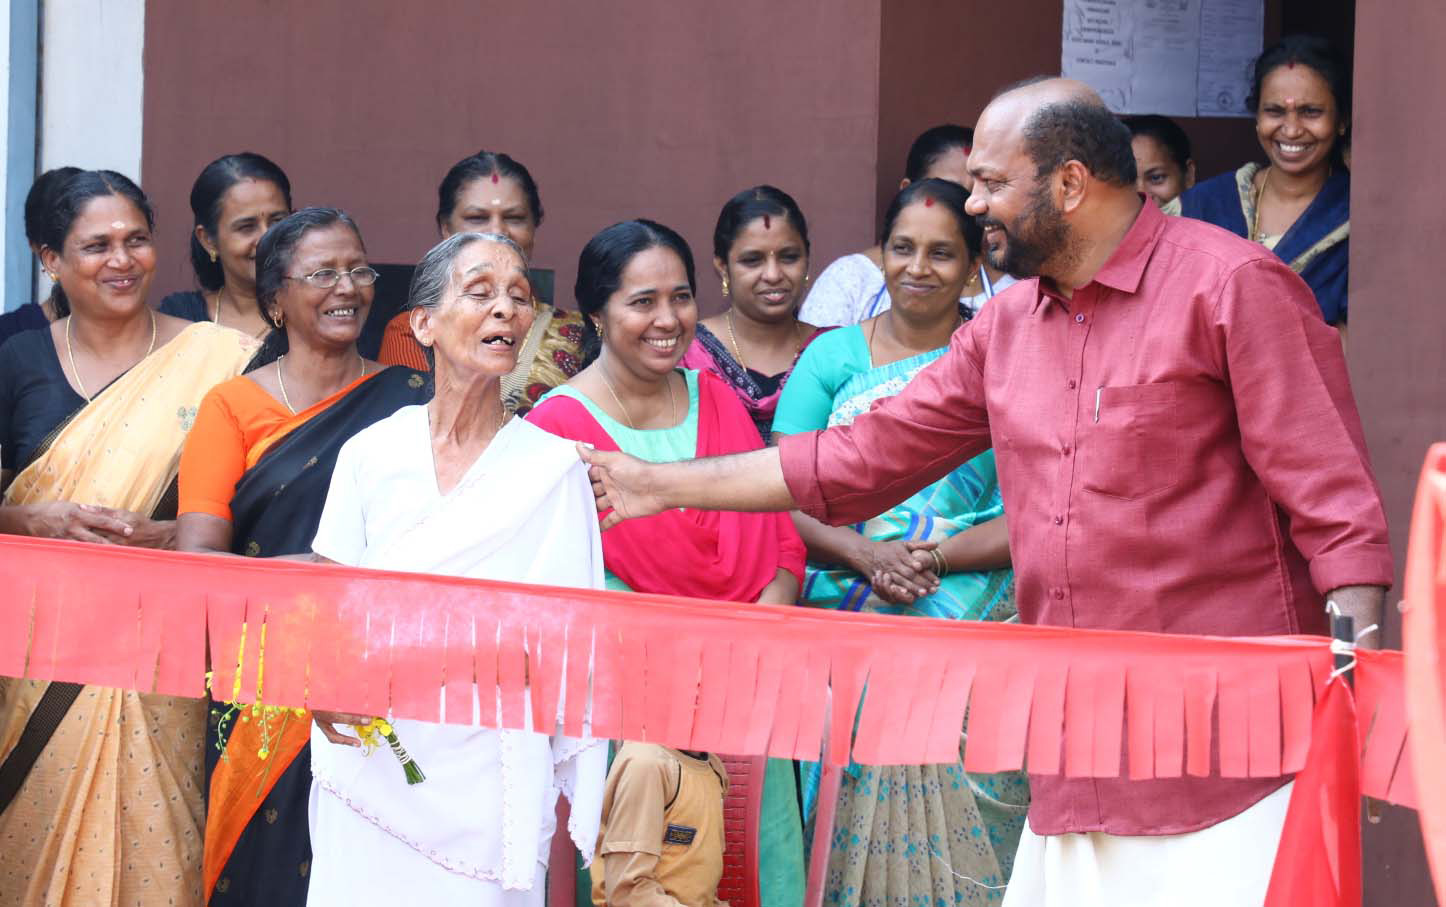 P Rajeev, Left Democratic Front (LDF) candidate in Ernakulam Lok Sabha constituency,  being received by crowd election campain at Puthenvelikkara , Kerala. (Photo by Binesh Kumar/GroundTruth)